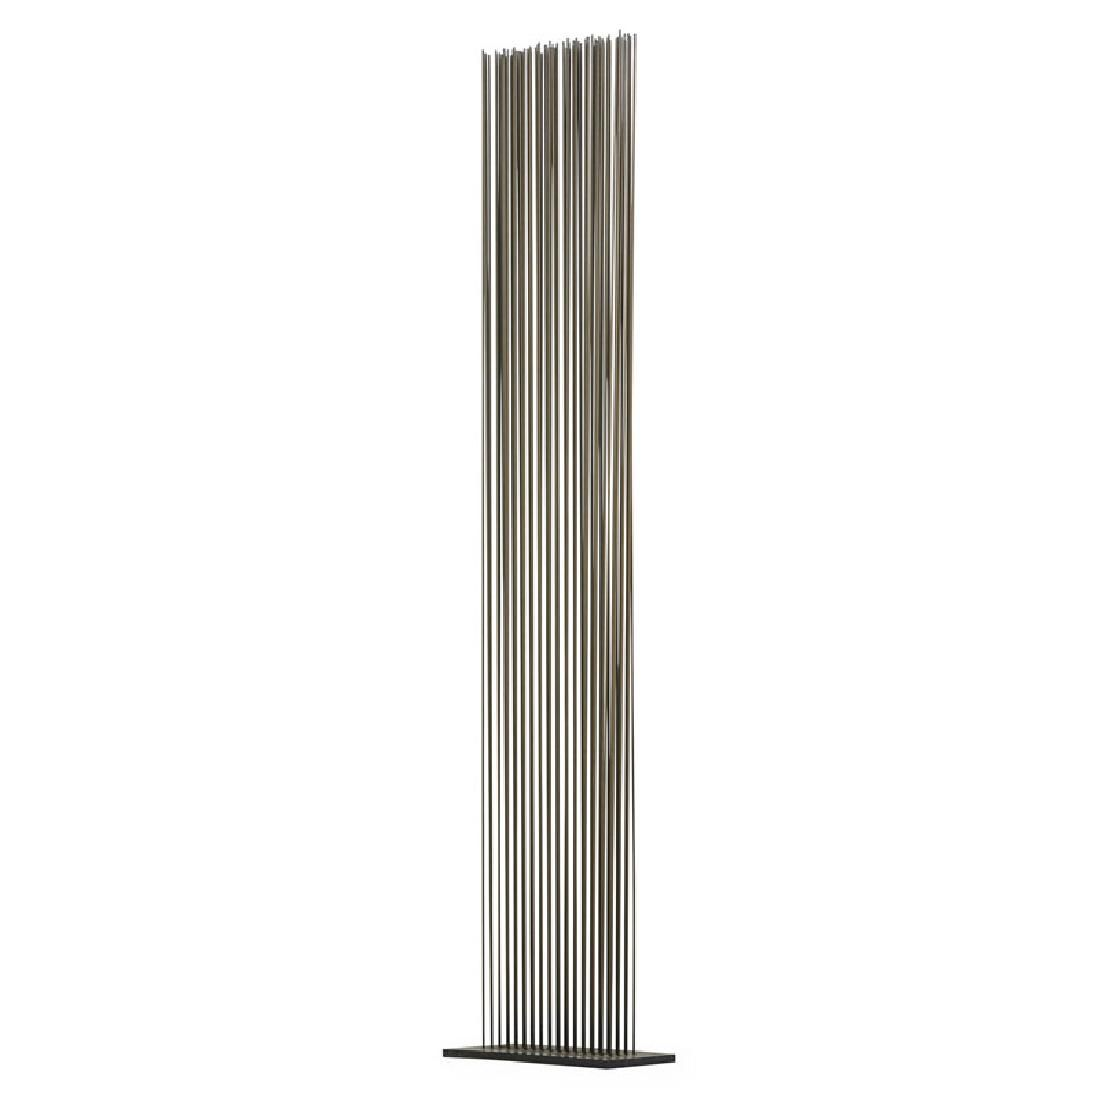 Lot: HARRY BERTOIA Large Sonambient sculpture, Lot Number: 1206, Starting Bid: $19,000, Auctioneer: Rago Arts and Auction Center, Auction: Modern Design, Date: January 22nd, 2017 +07